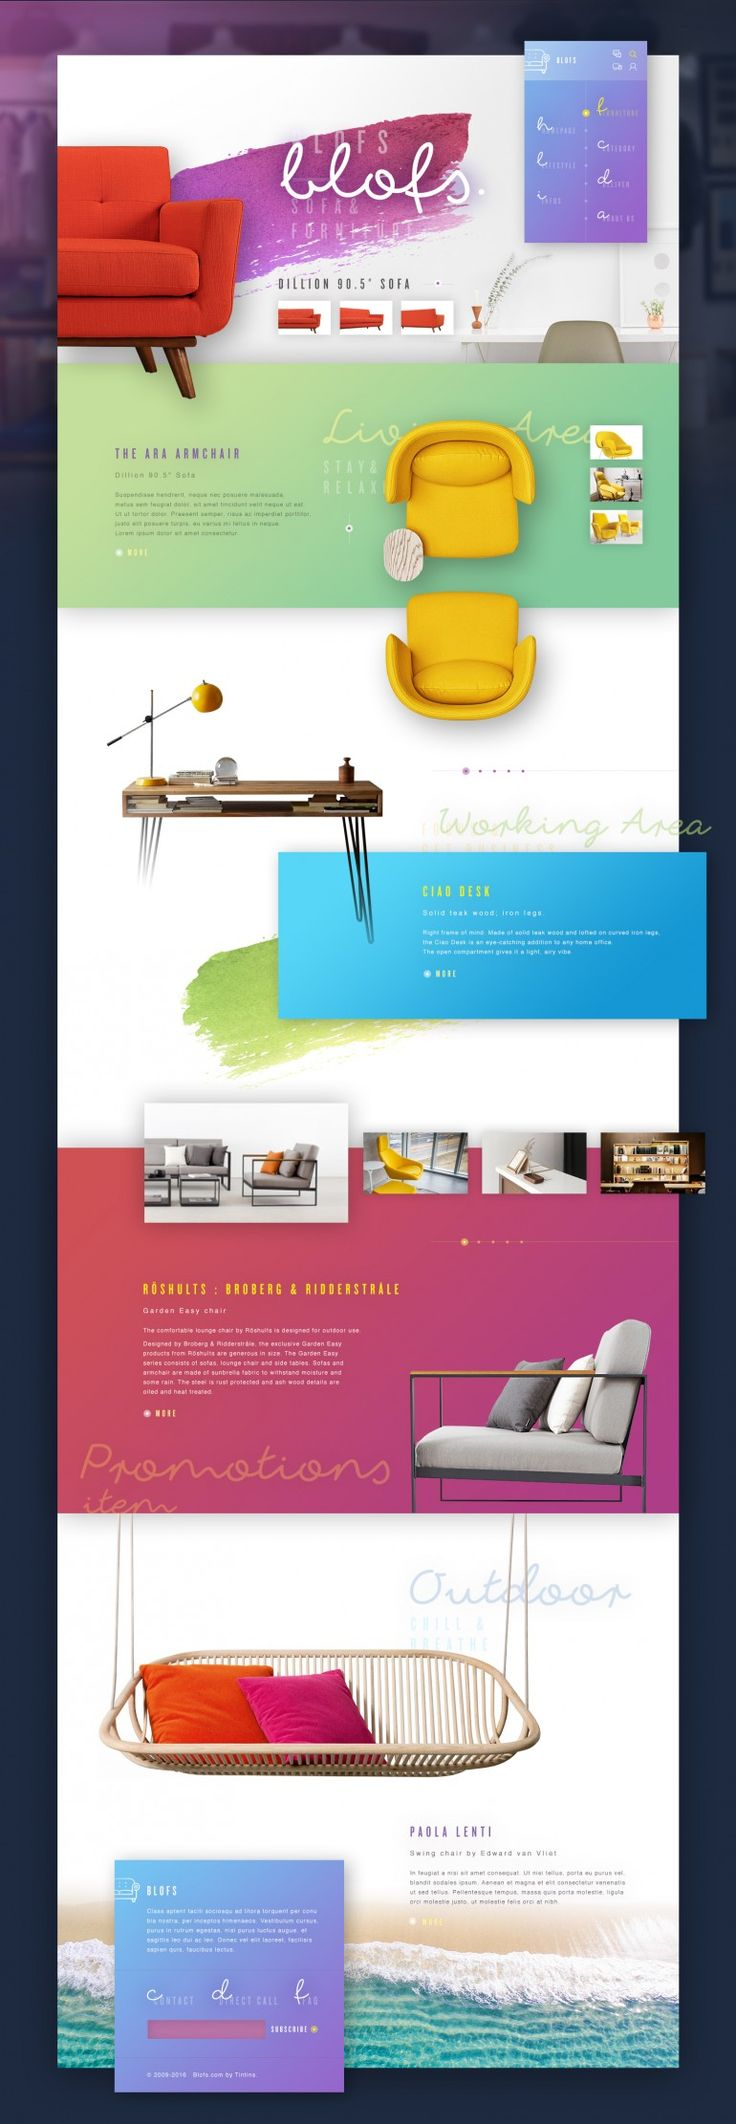 Blofs : Colorful decor